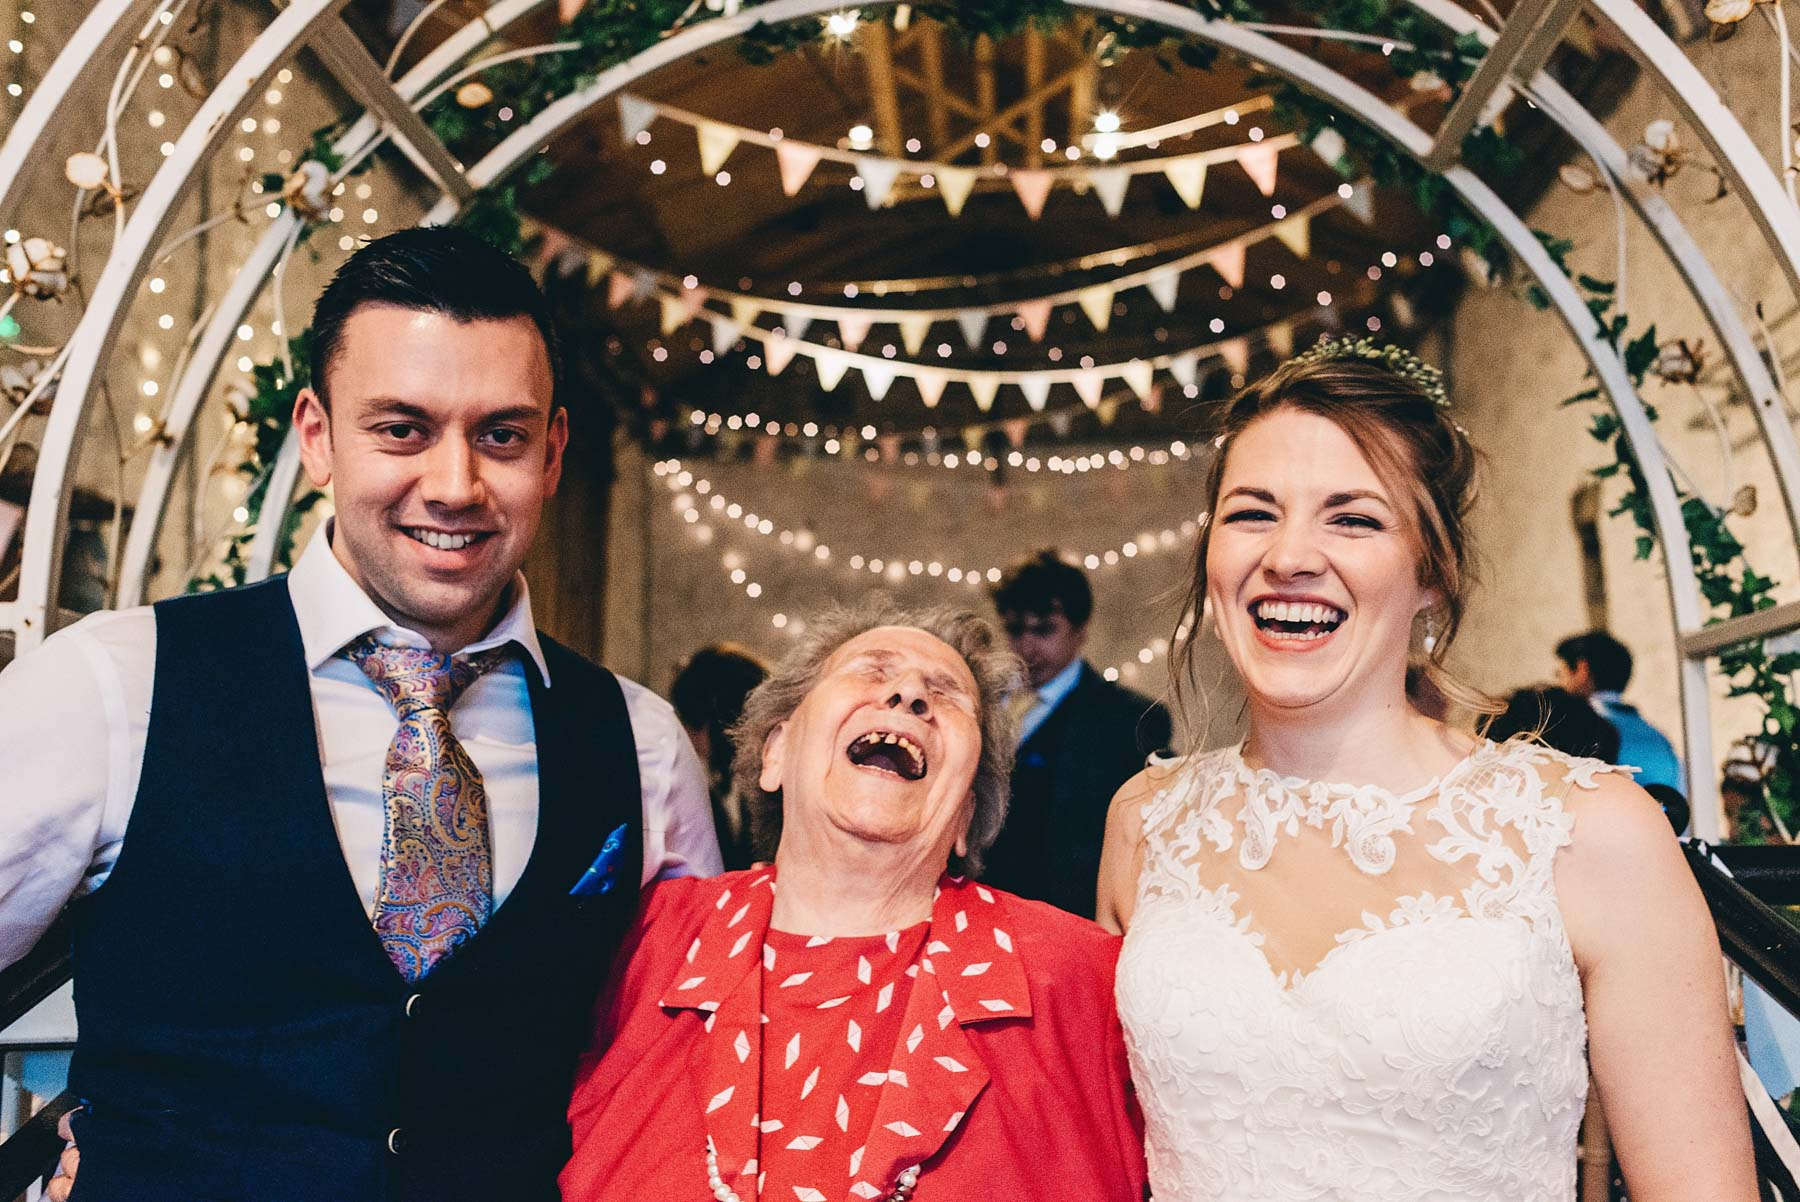 Grandma laughs with Bride and Groom